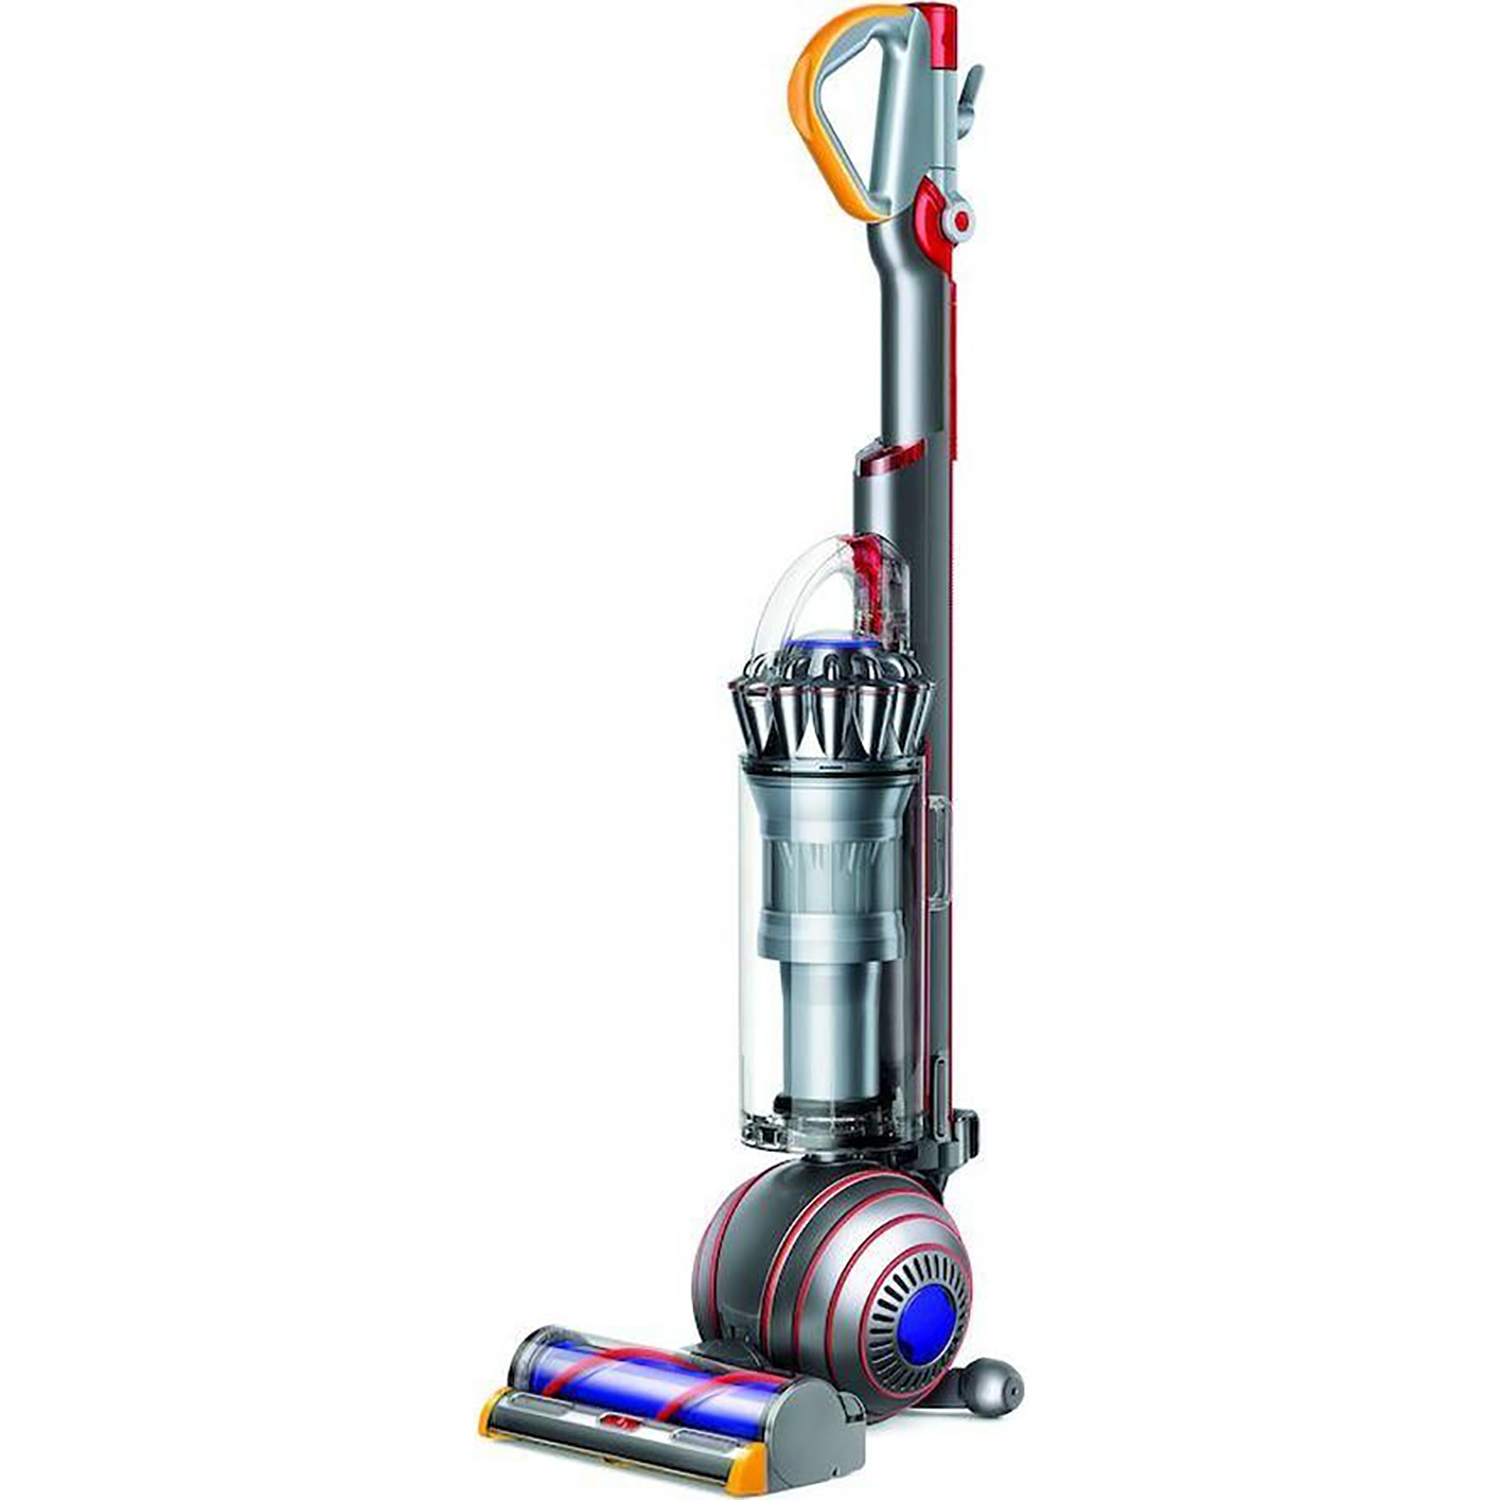 Image of Dyson Ball Animal 2+ Upright Bagless Vacuum Cleaner